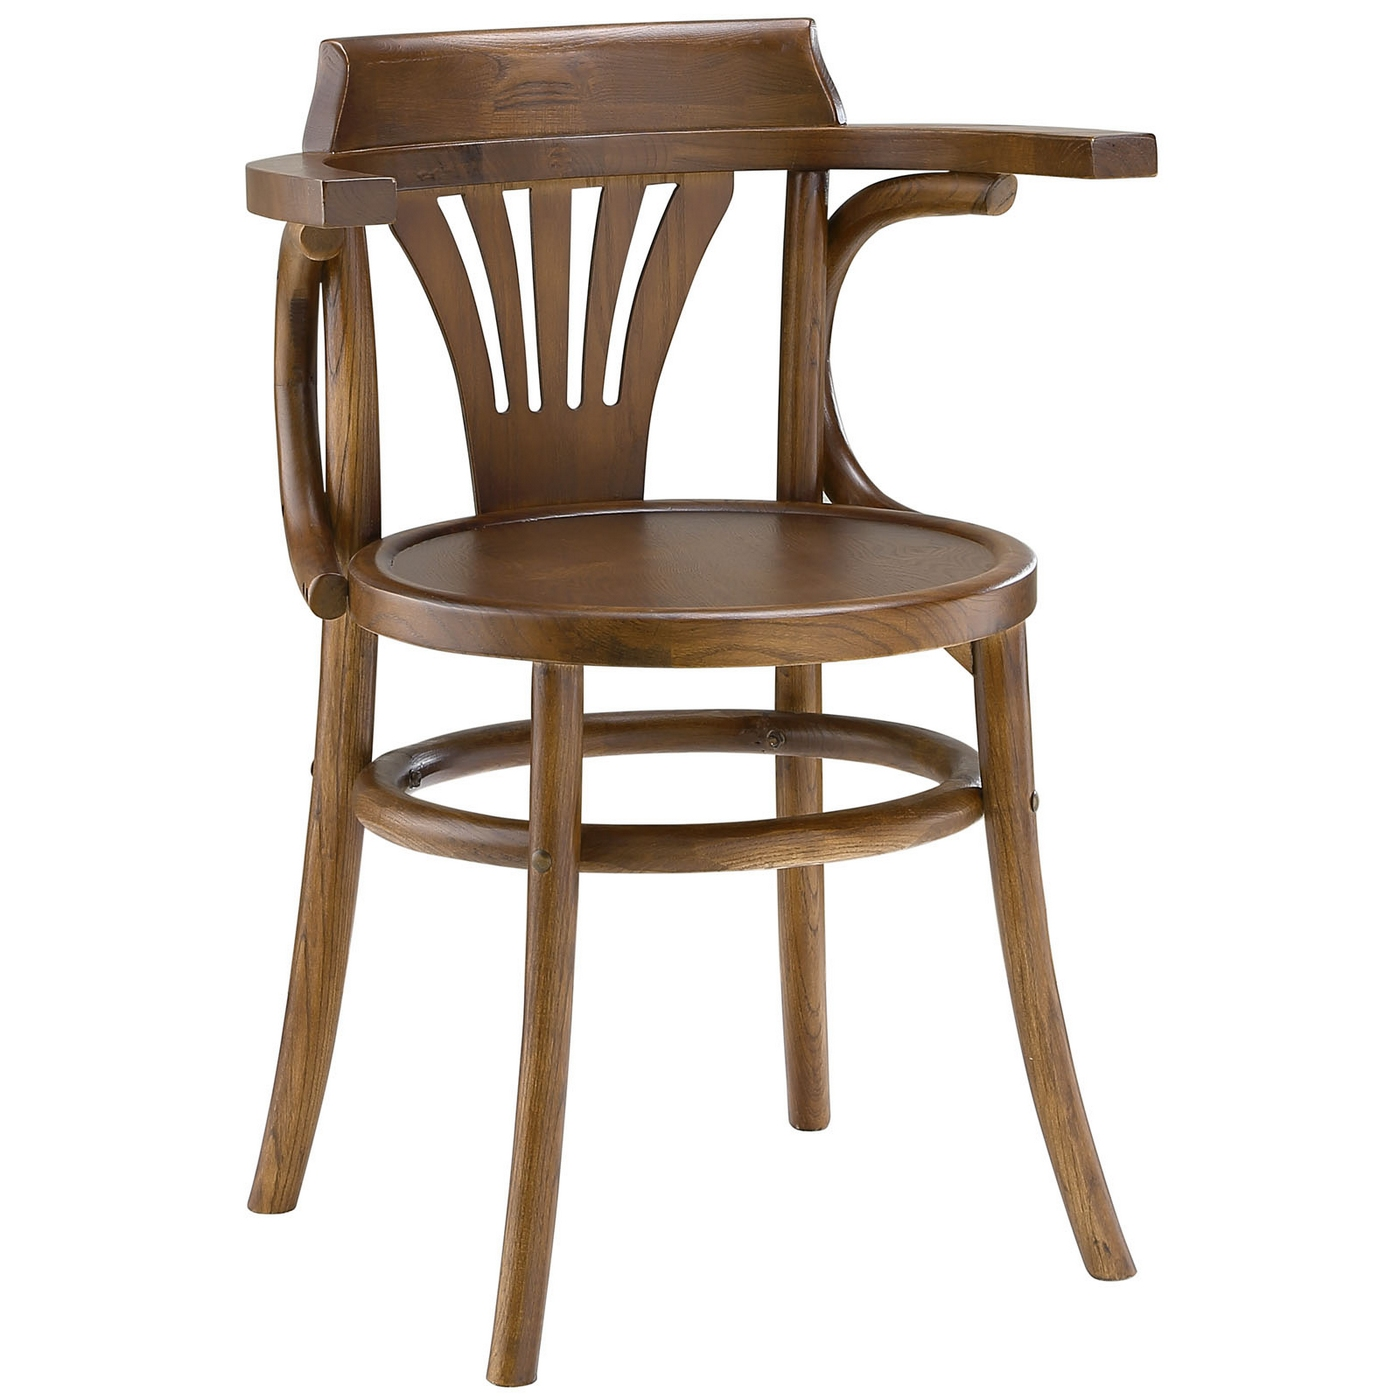 round wooden chair club chairs with ottoman stretch modern rustic solid wood seat dining side